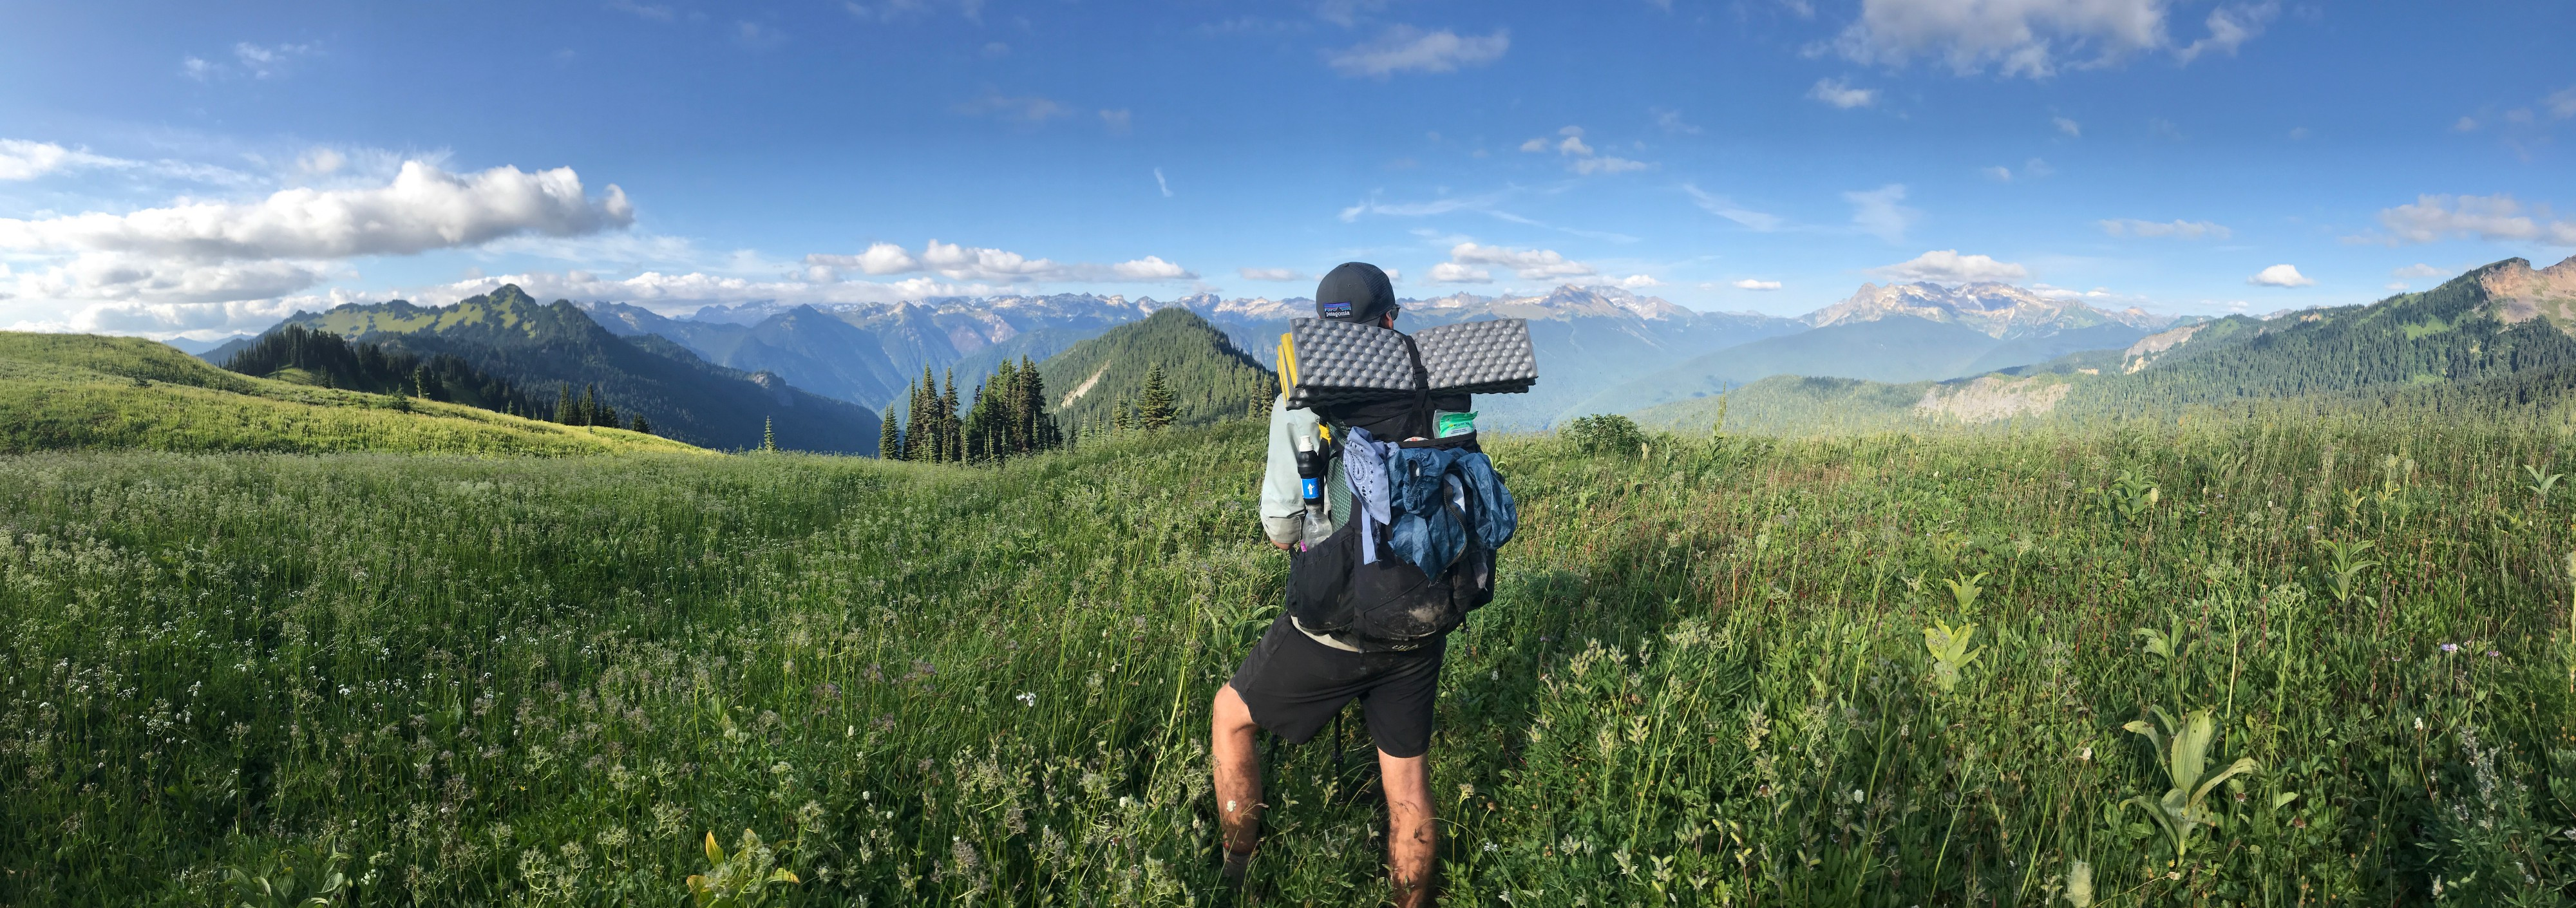 How I Fixed My Knee Injury in Time to Hike 2,450+ Miles This Summer